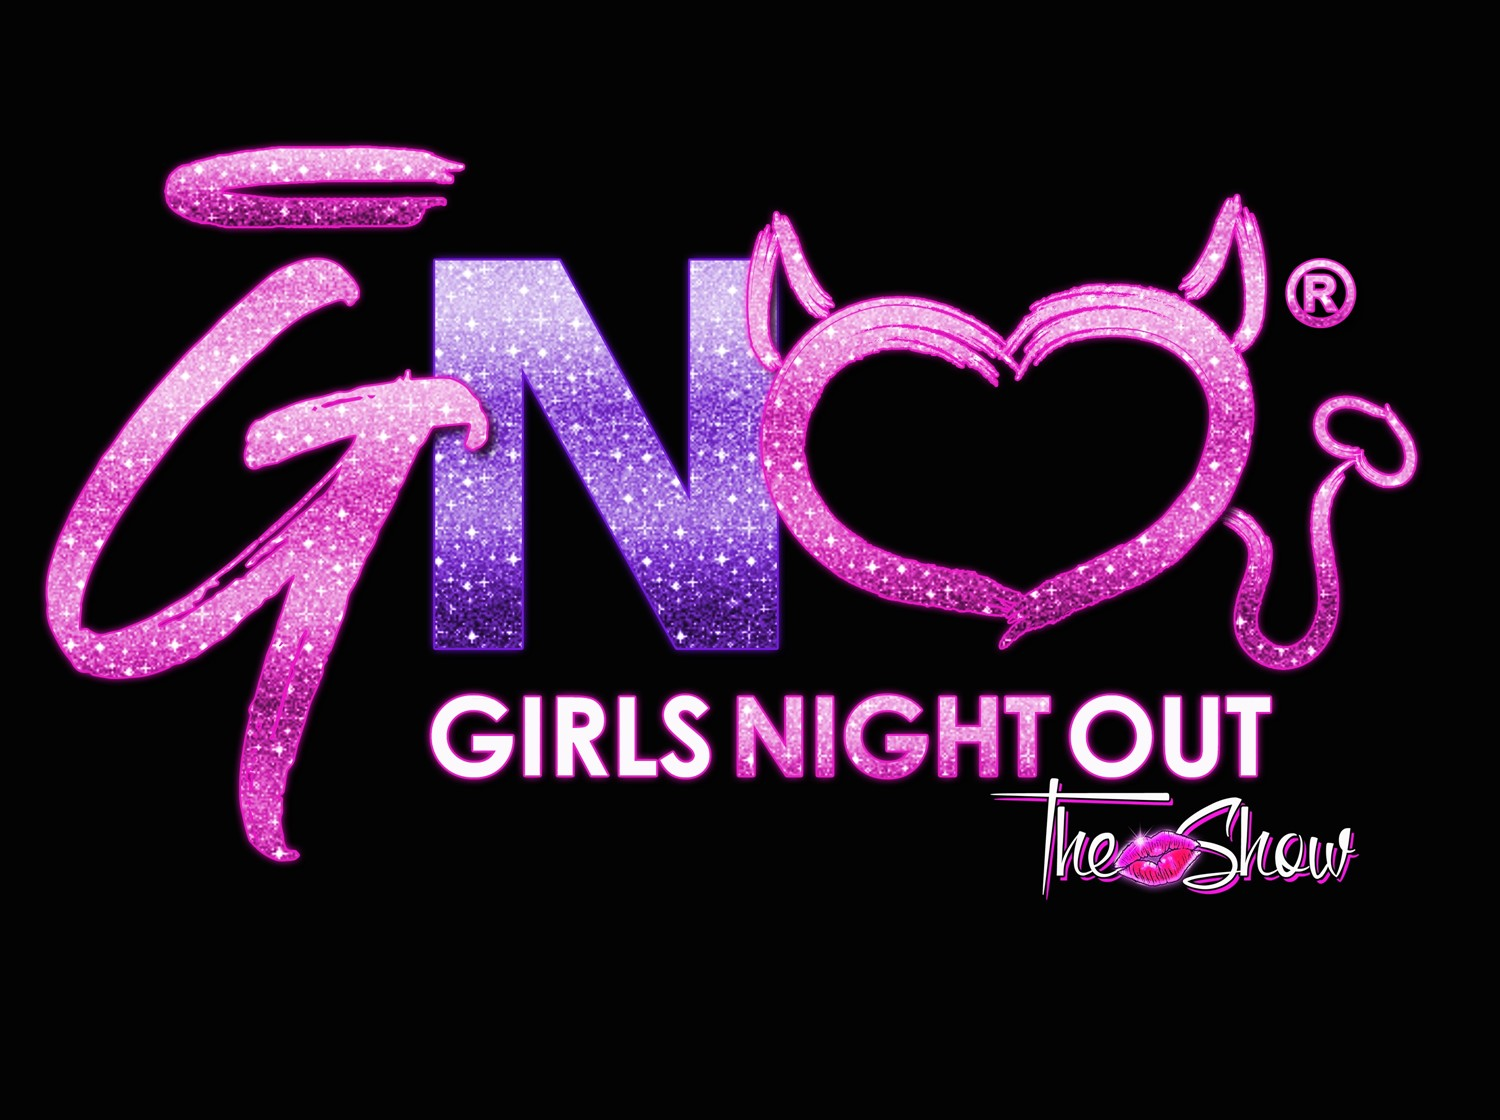 The Ruin (21+) Fort Wayne, IN on Apr 12, 20:00@The Ruin - Buy tickets and Get information on Girls Night Out the Show tickets.girlsnightouttheshow.com